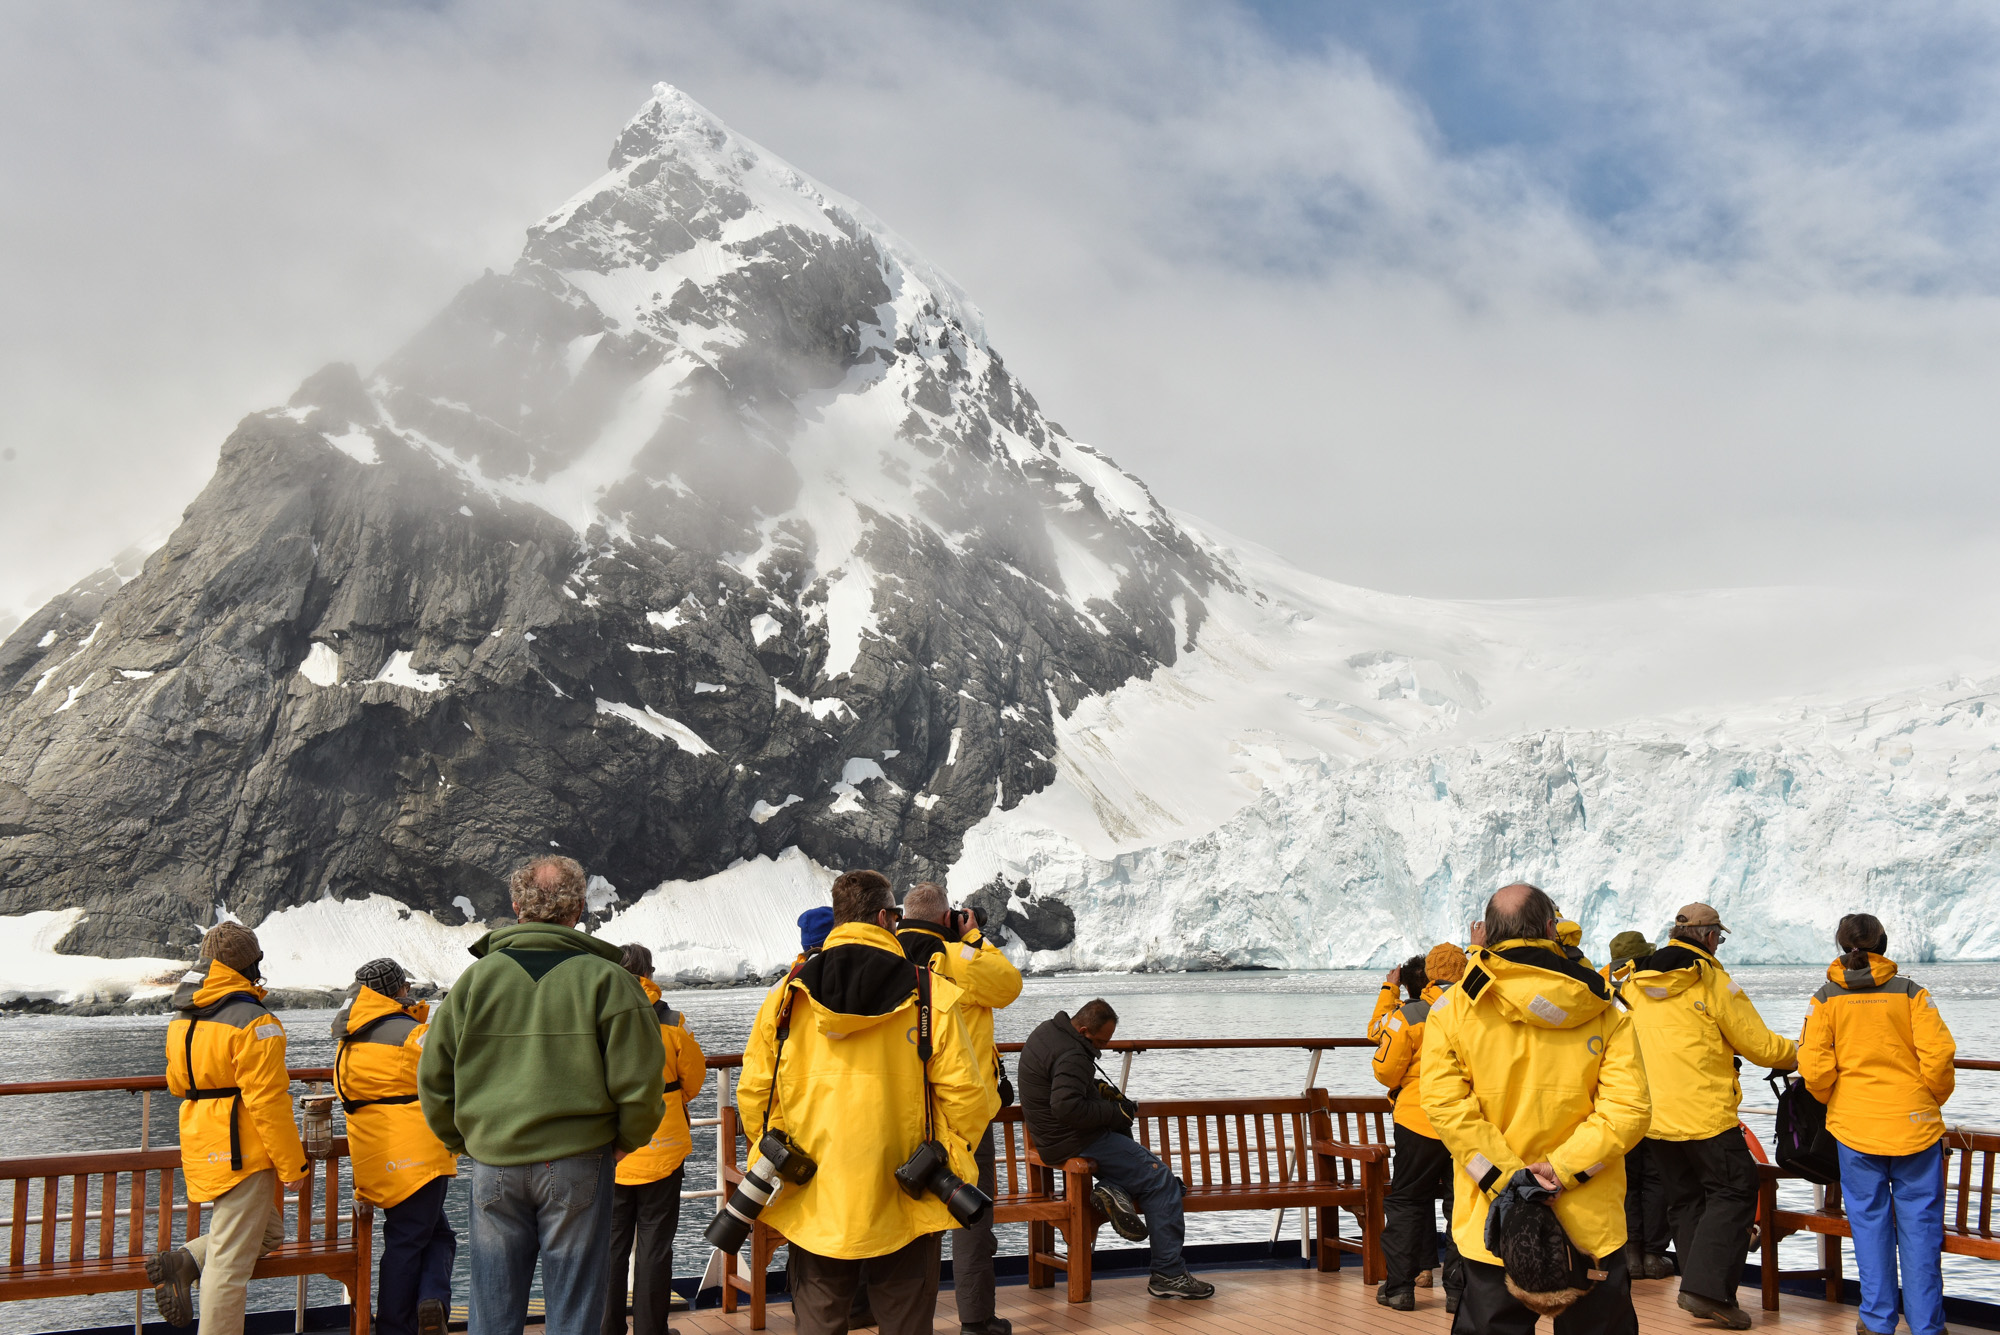 Passengers marvel at the sheer scale of Point Wild, an important Antarctic historic site.